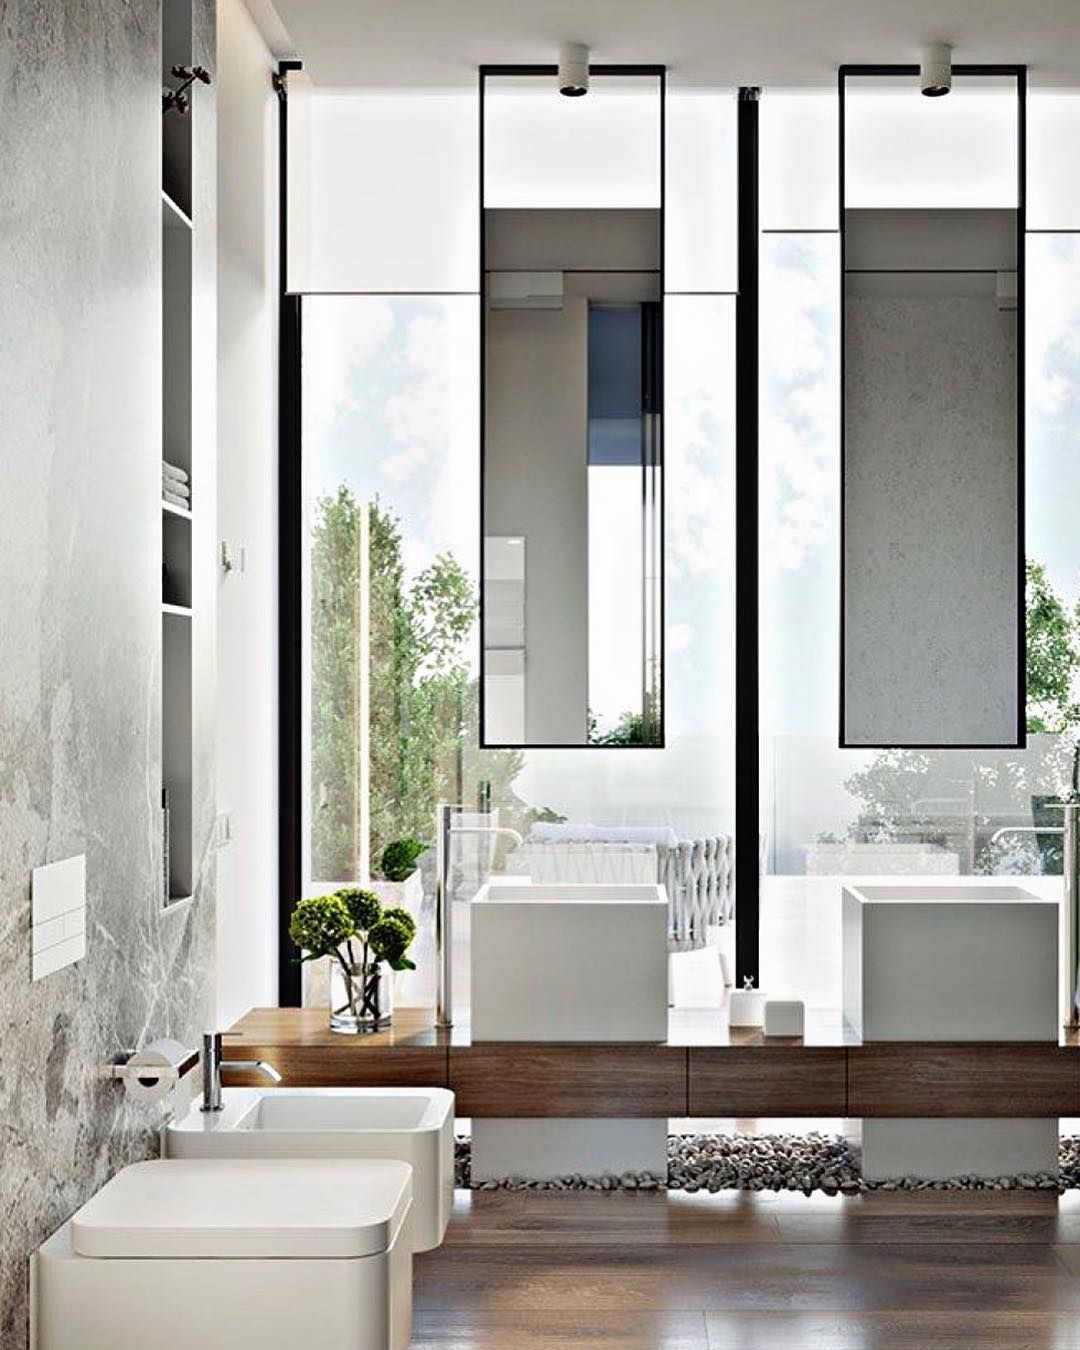 New The 10 Best Home Decor With Pictures Trasparenze In Bagno Inspohome Arredament Interior Design Studio Bathroom Design Decor Interior Design